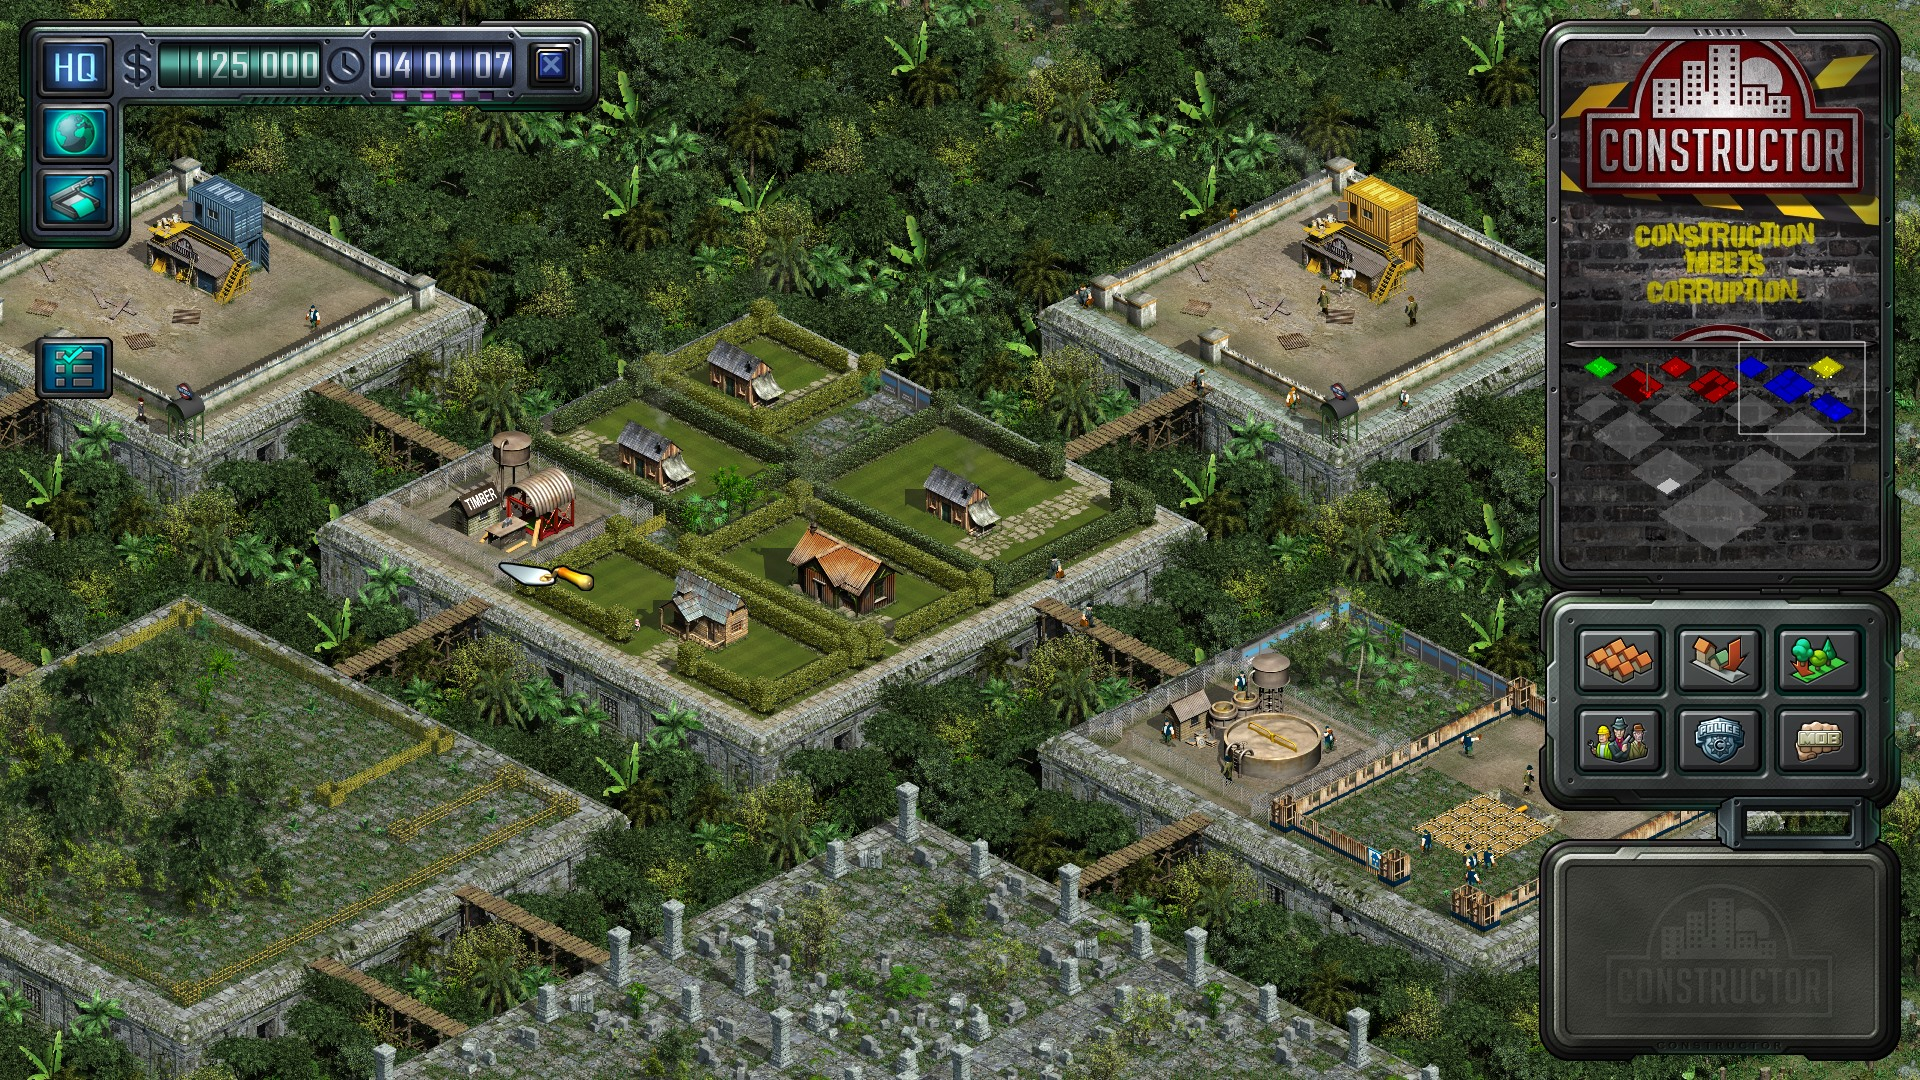 constructor pc game download windows 7